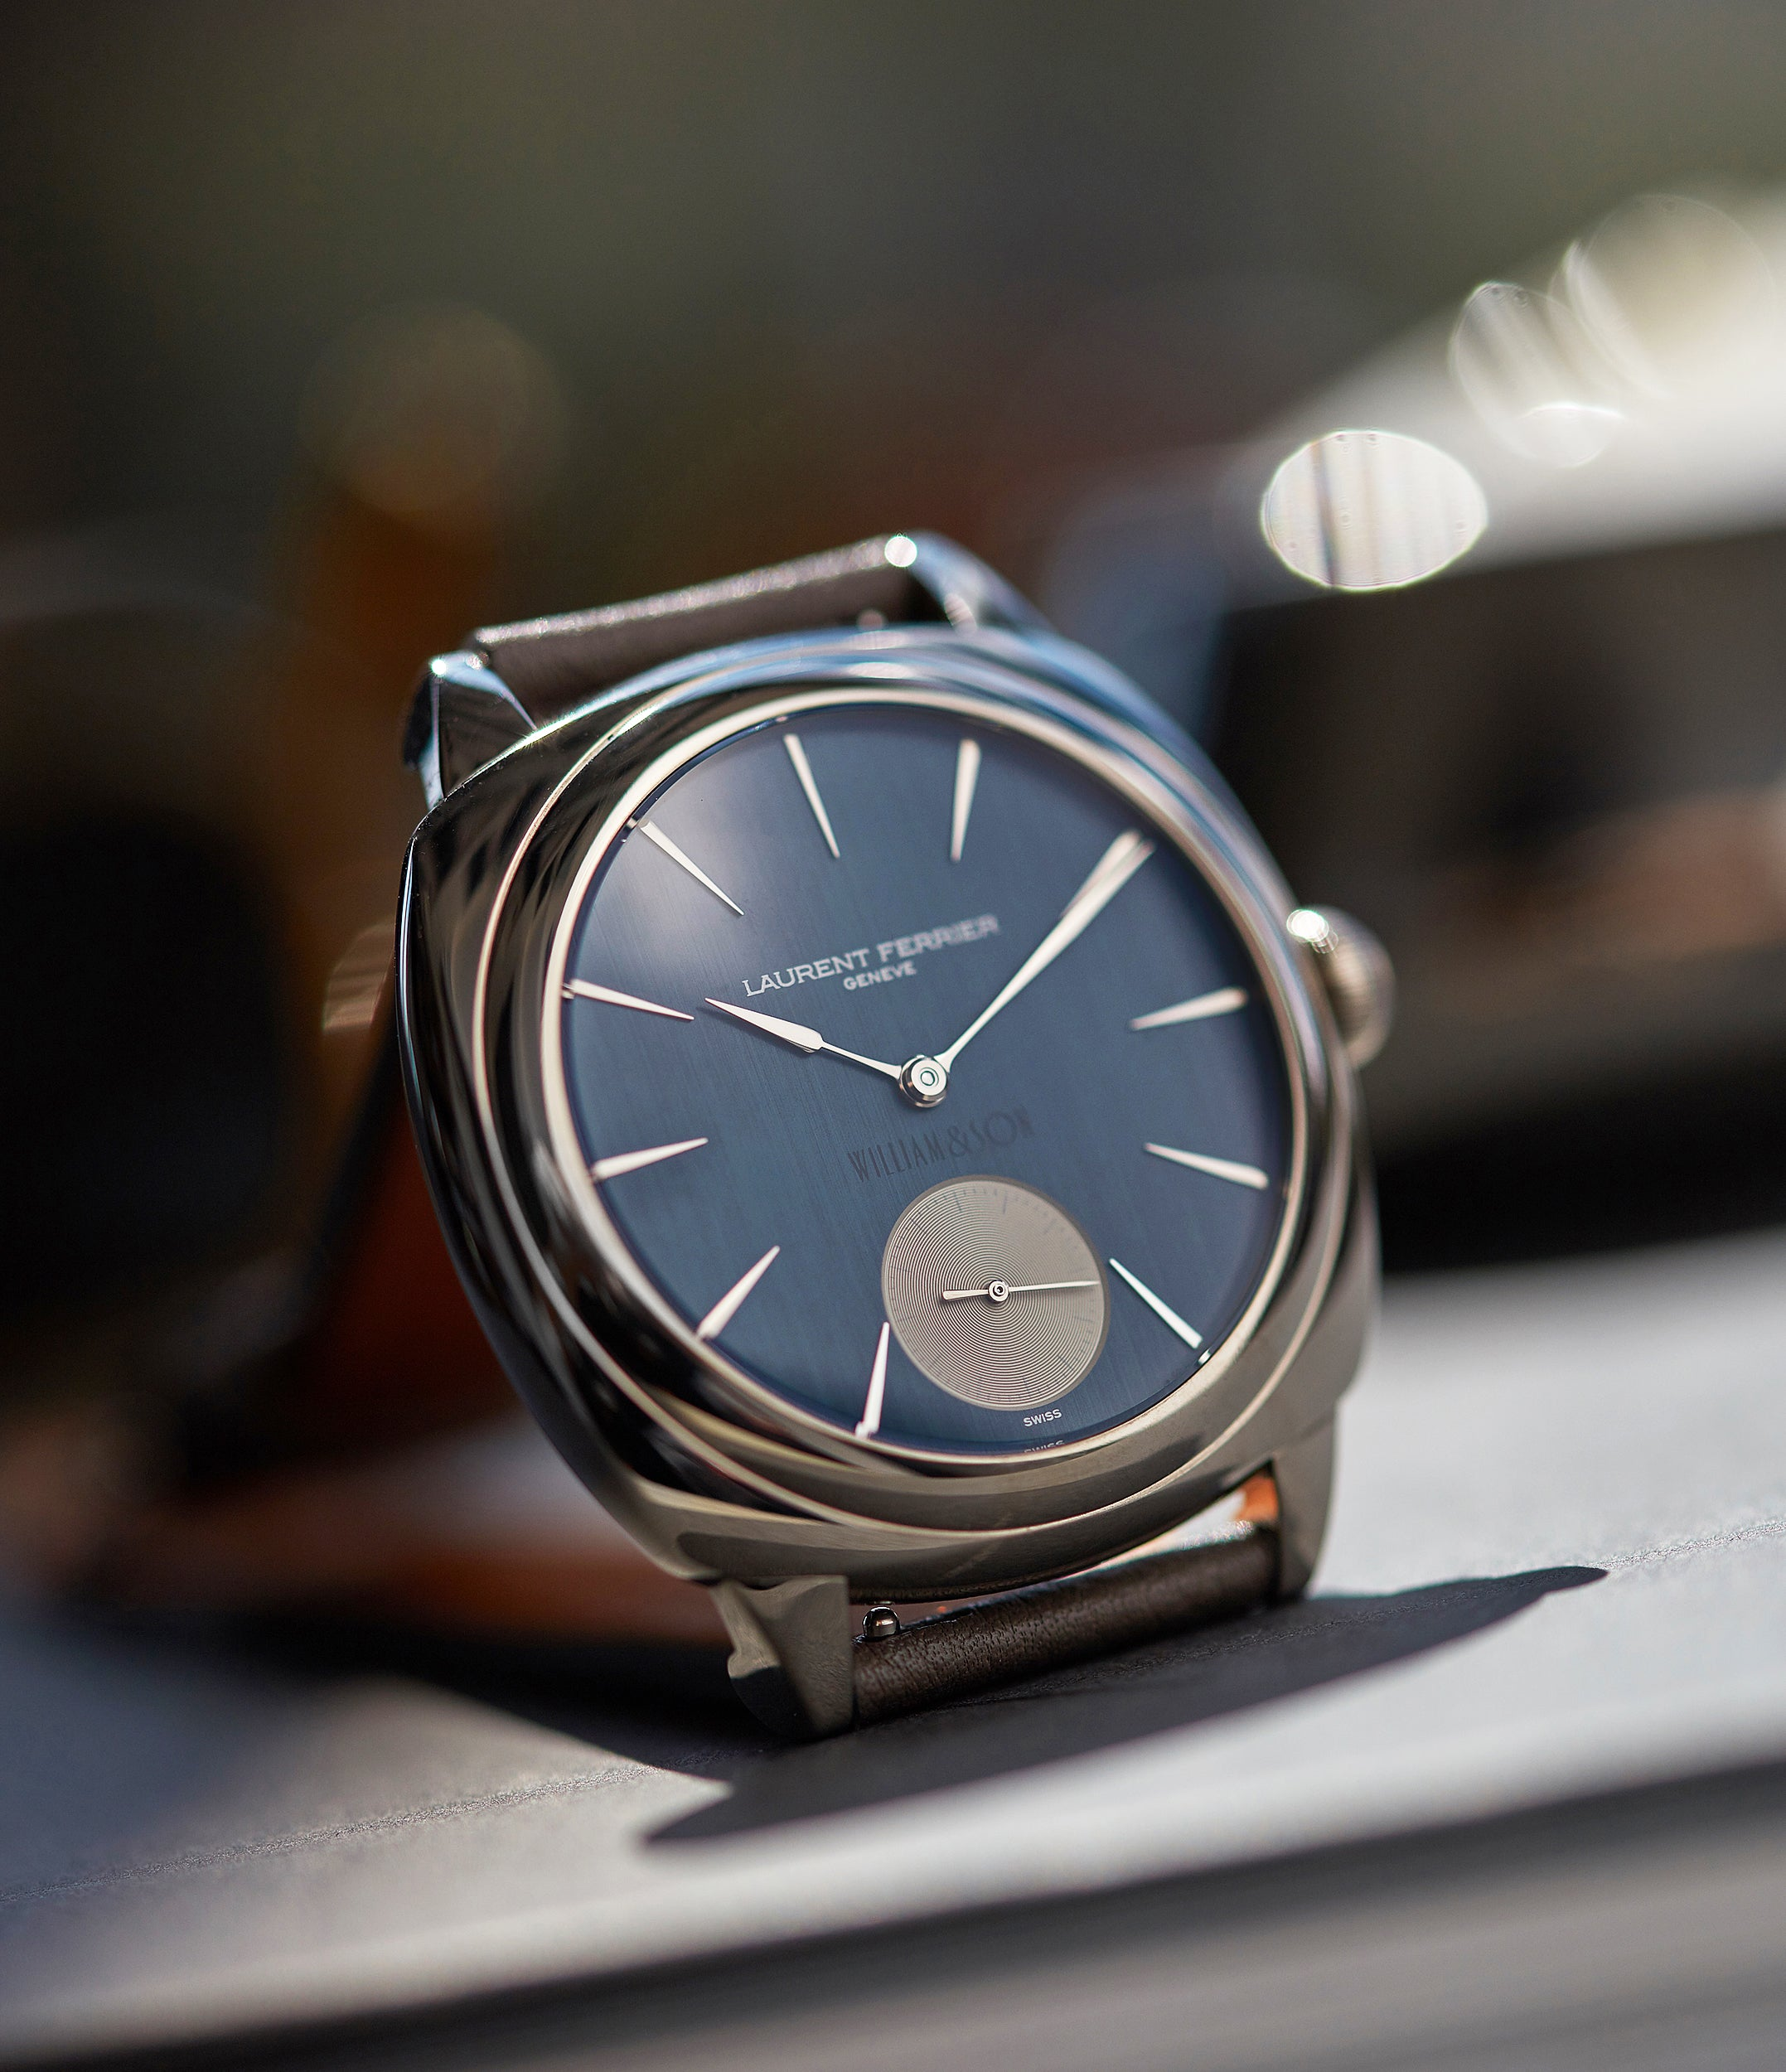 selling Laurent Ferrier Micro Rotor LF 229.01 Galet Square William&Son blue dial white gold watch online at A Collected Man London approved seller of preowned independent watchmakers